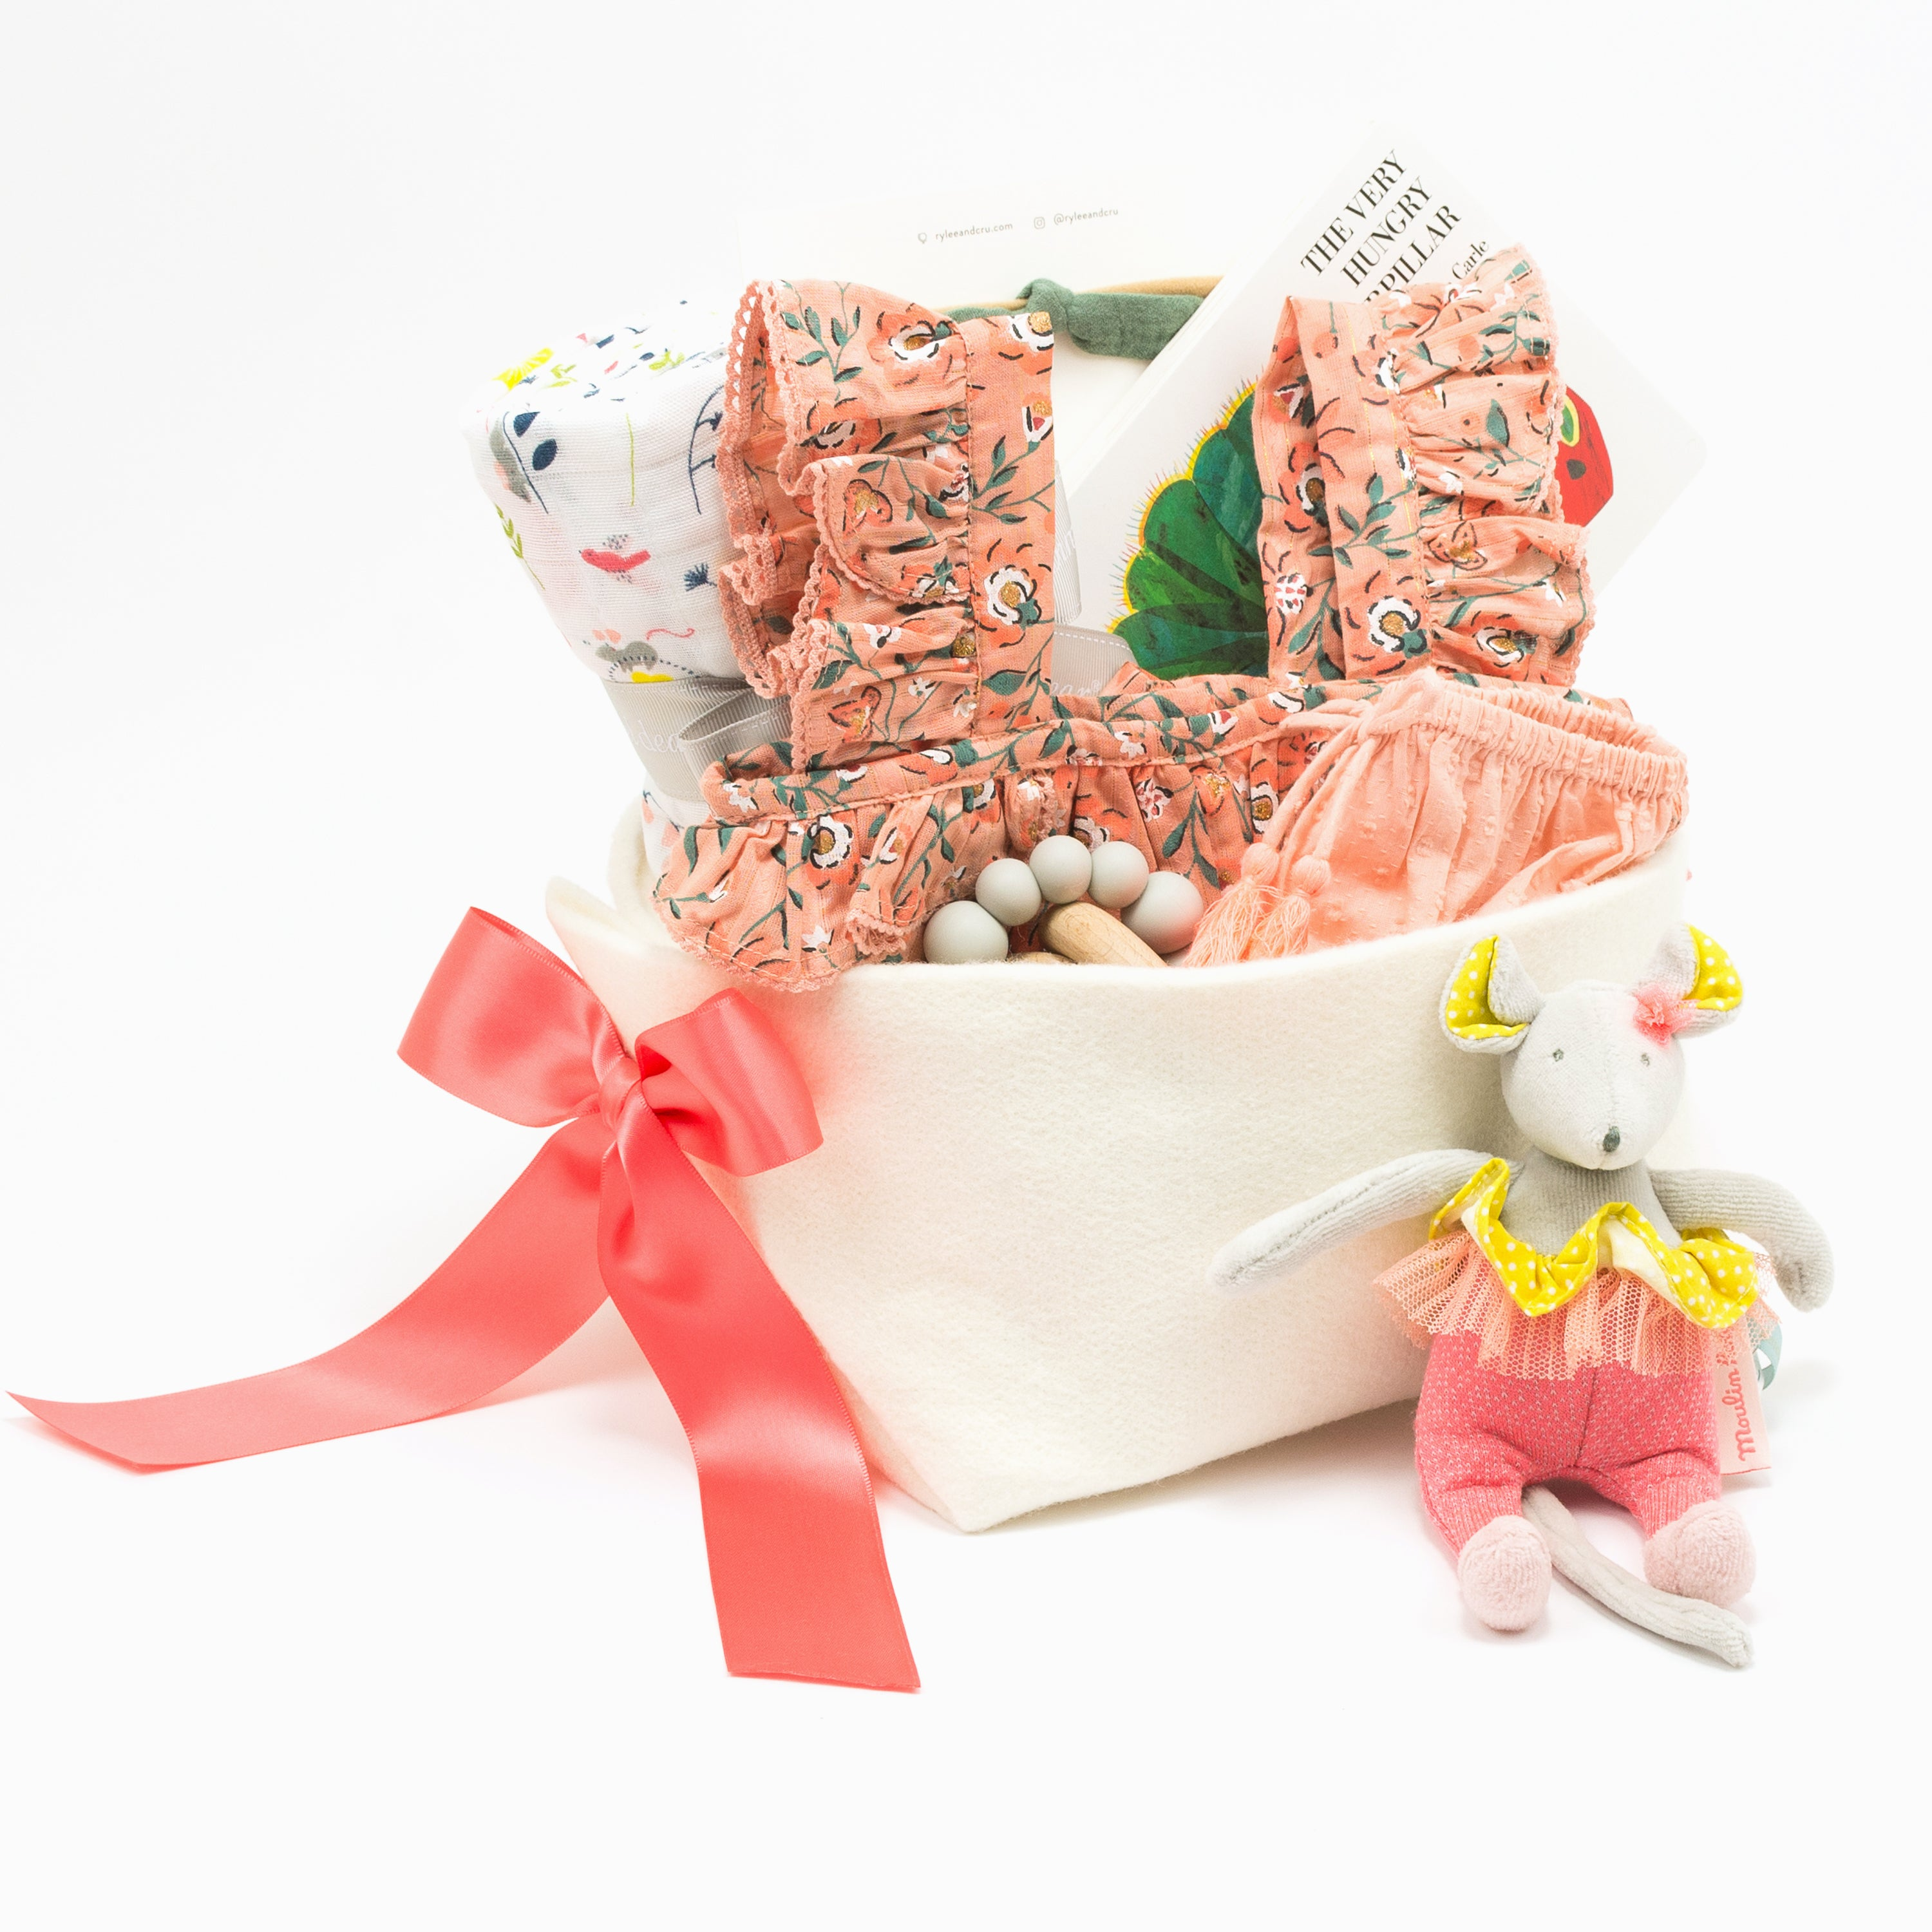 Luxury Baby Girl Gift Basket at Bonjour Baby Baskets, perfect for your Corporate Baby Gifts